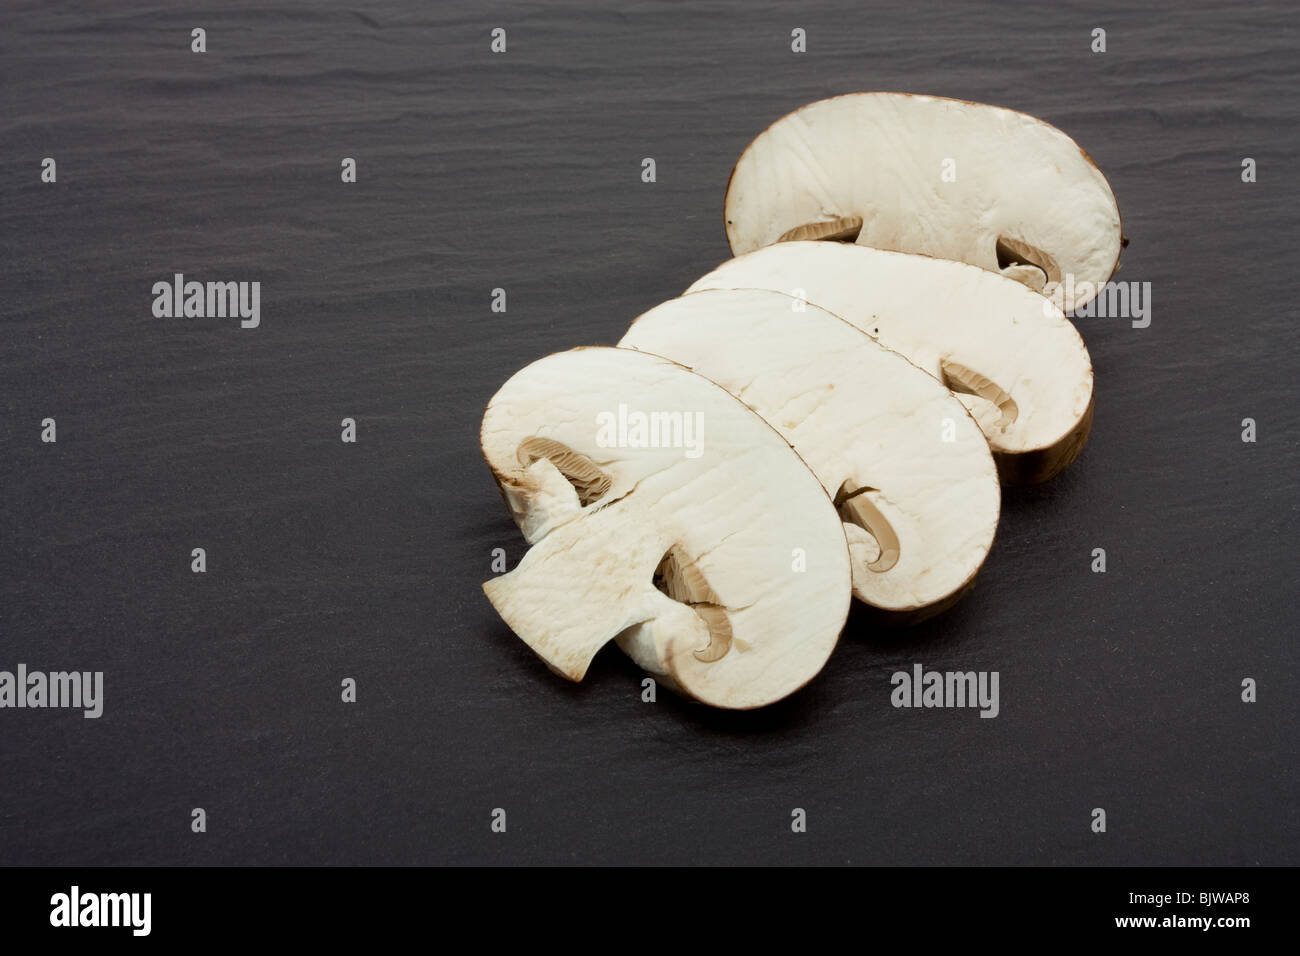 Sliced and whole Chestnut Mushrooms on background of dark slate. - Stock Image